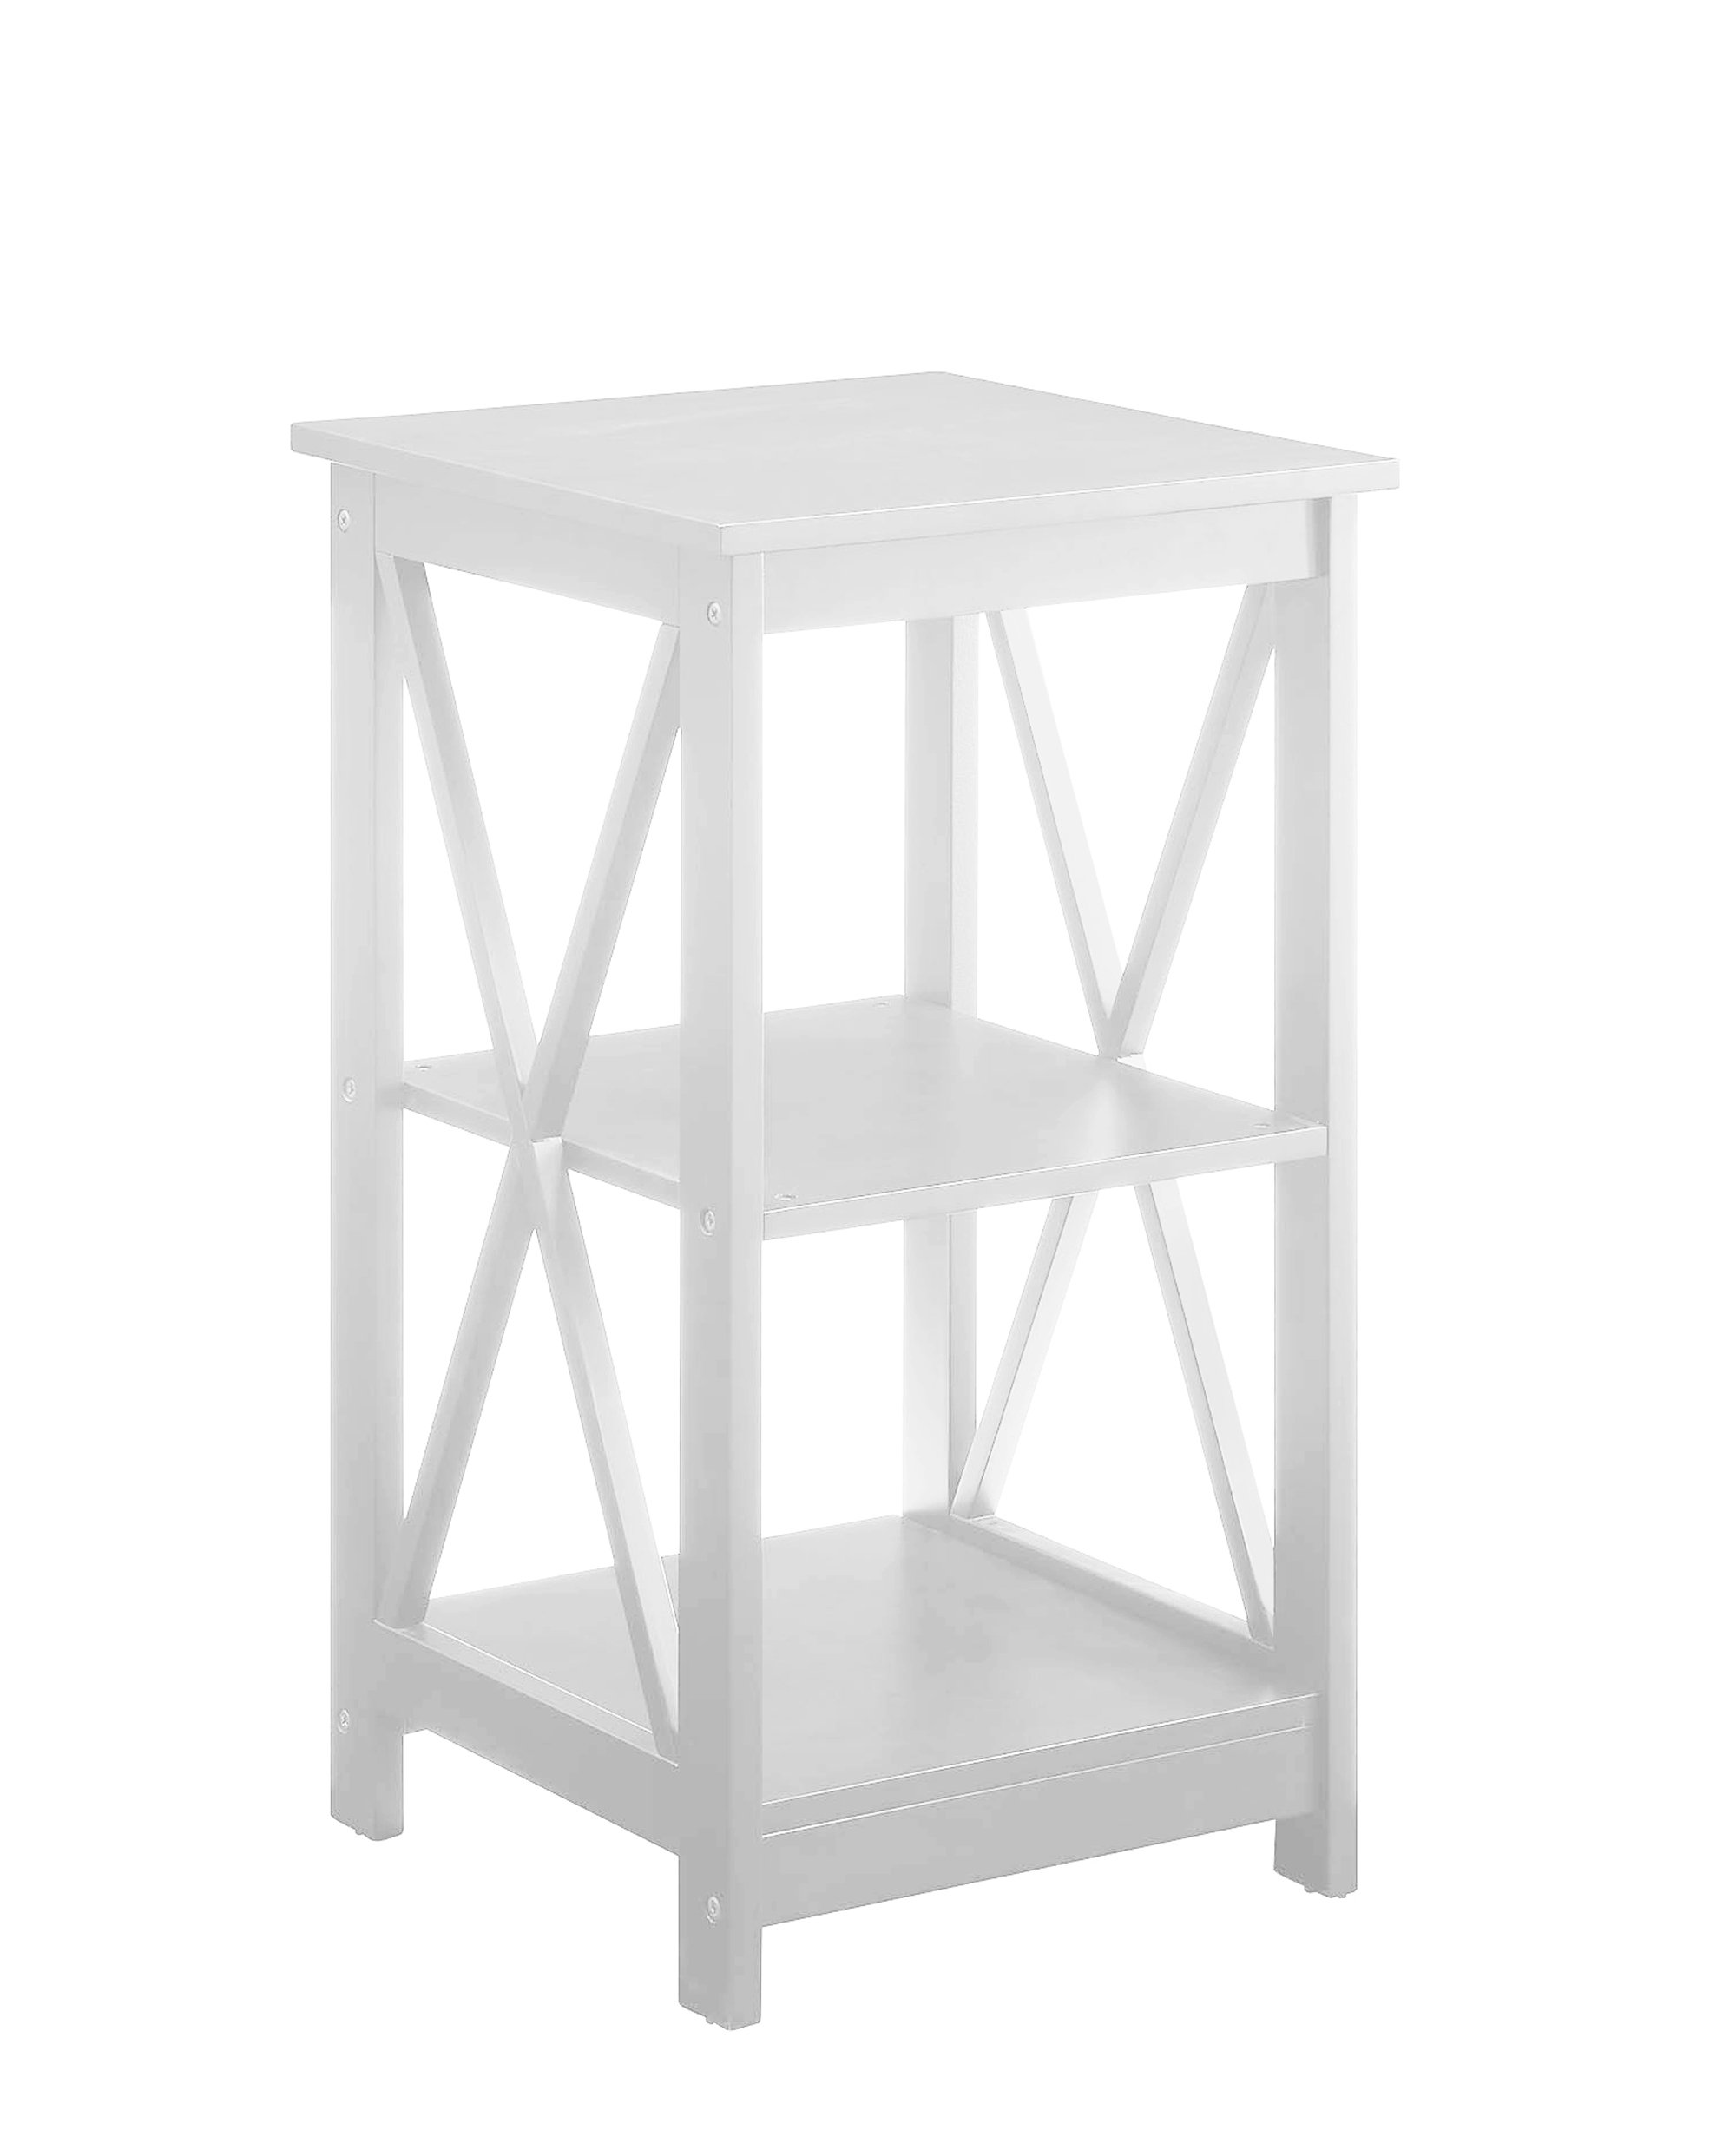 Convenience Concepts Oxford End Table, White by Convenience Concepts